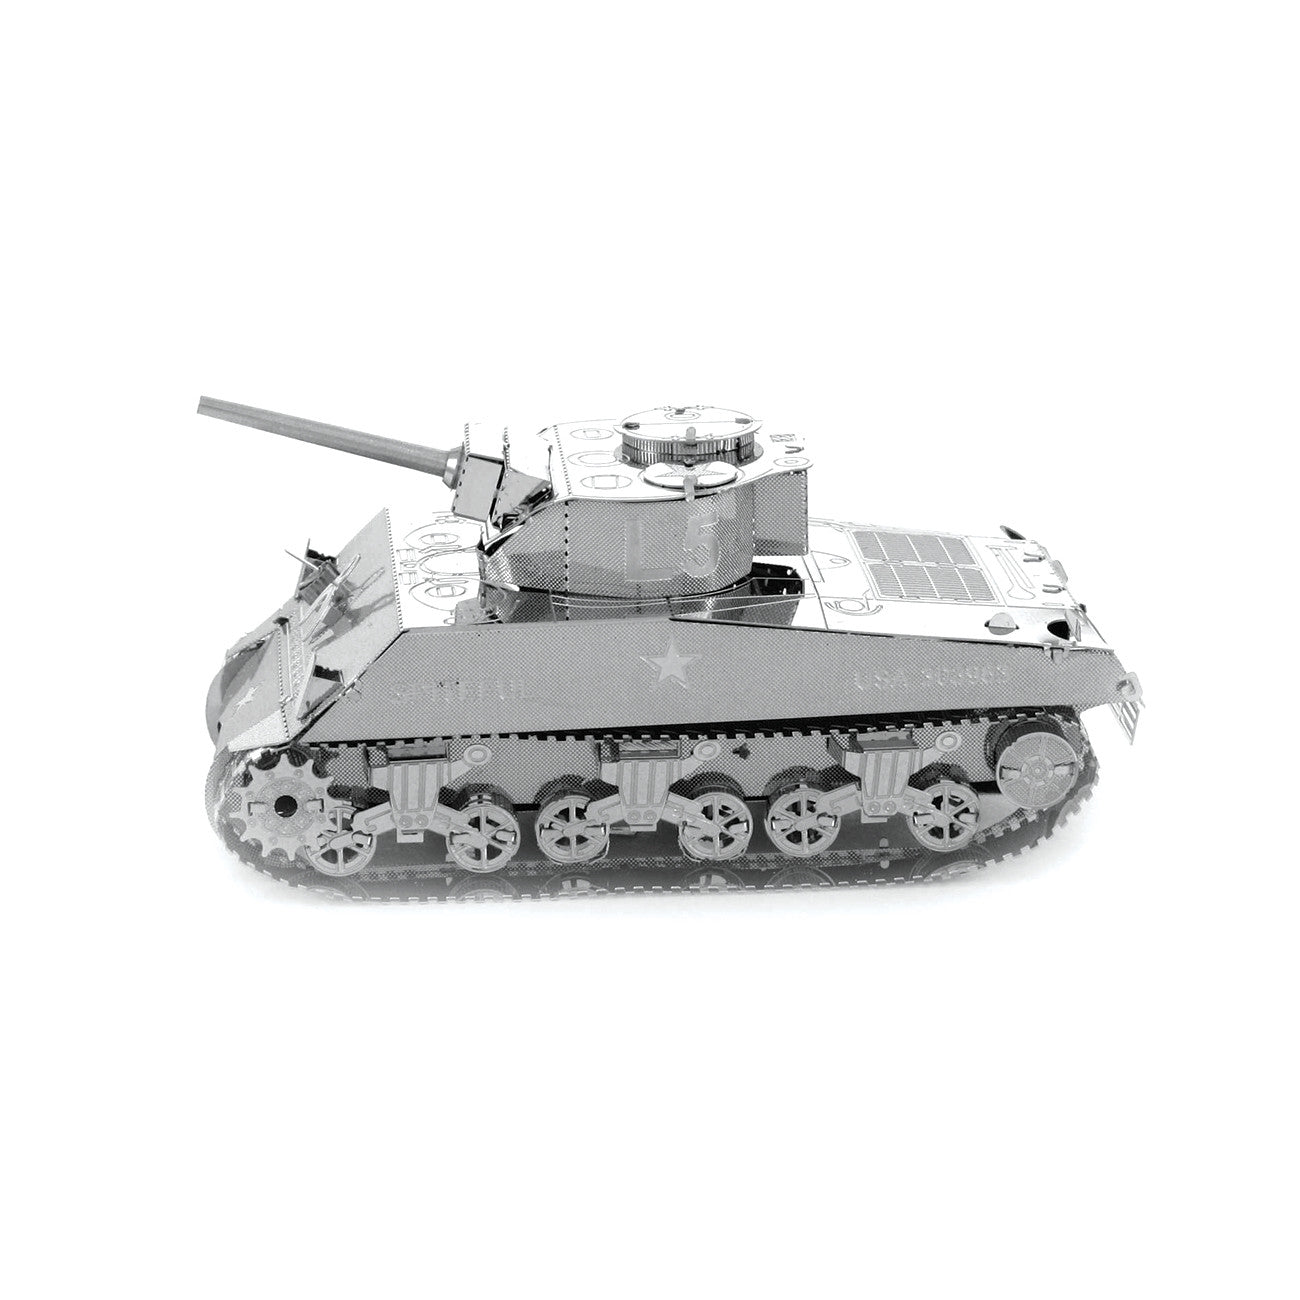 3D metal model building kit USA Sherman tank 3D puzzle DIY toy boys mens | Healing stone Handmade Jewelry by AnuanA Craft